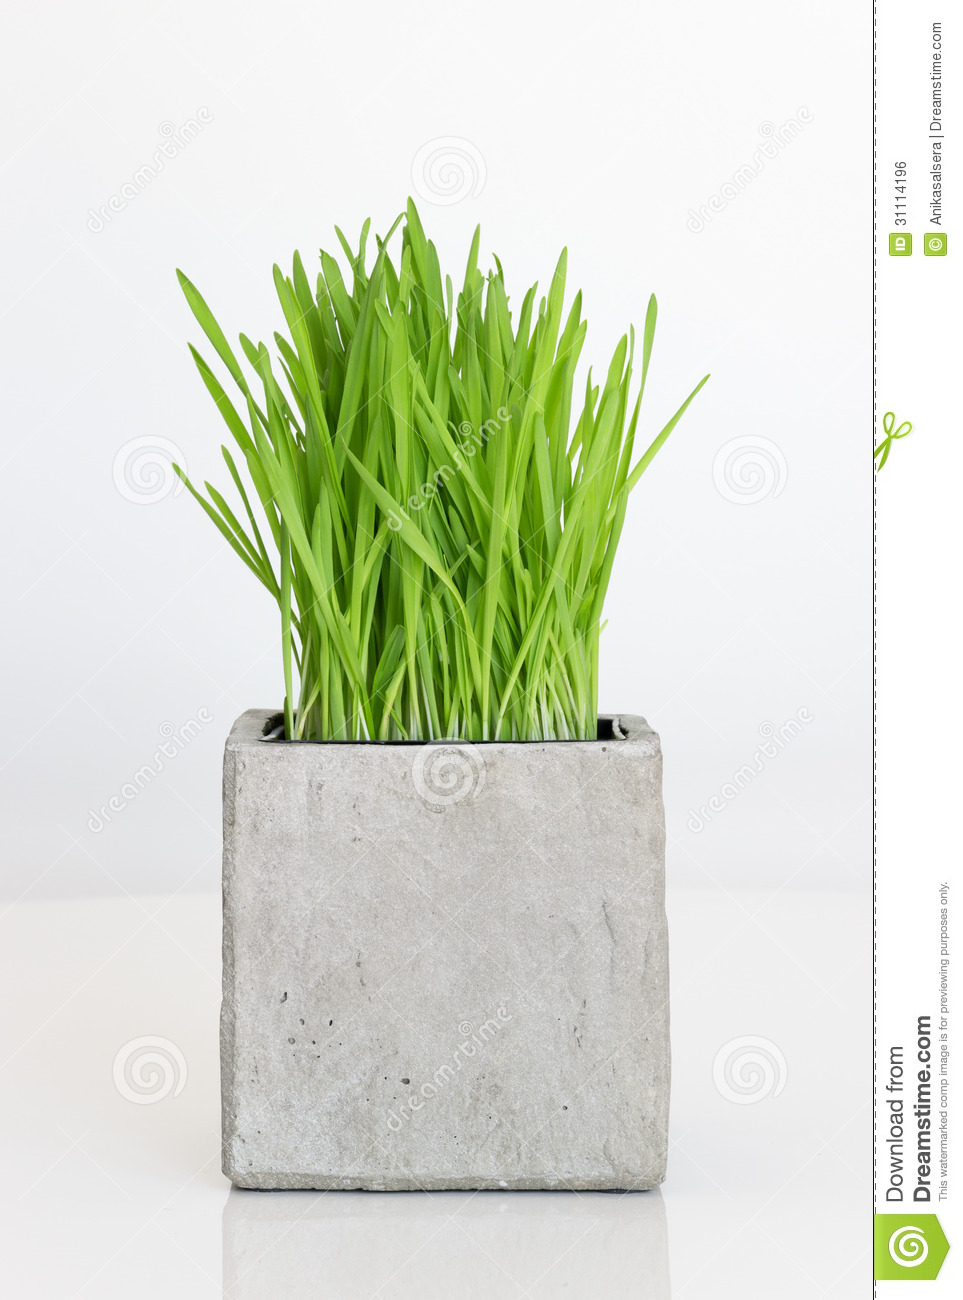 Wheatgrass Growing In Concrete Pot Stock Photo Image Of Modern